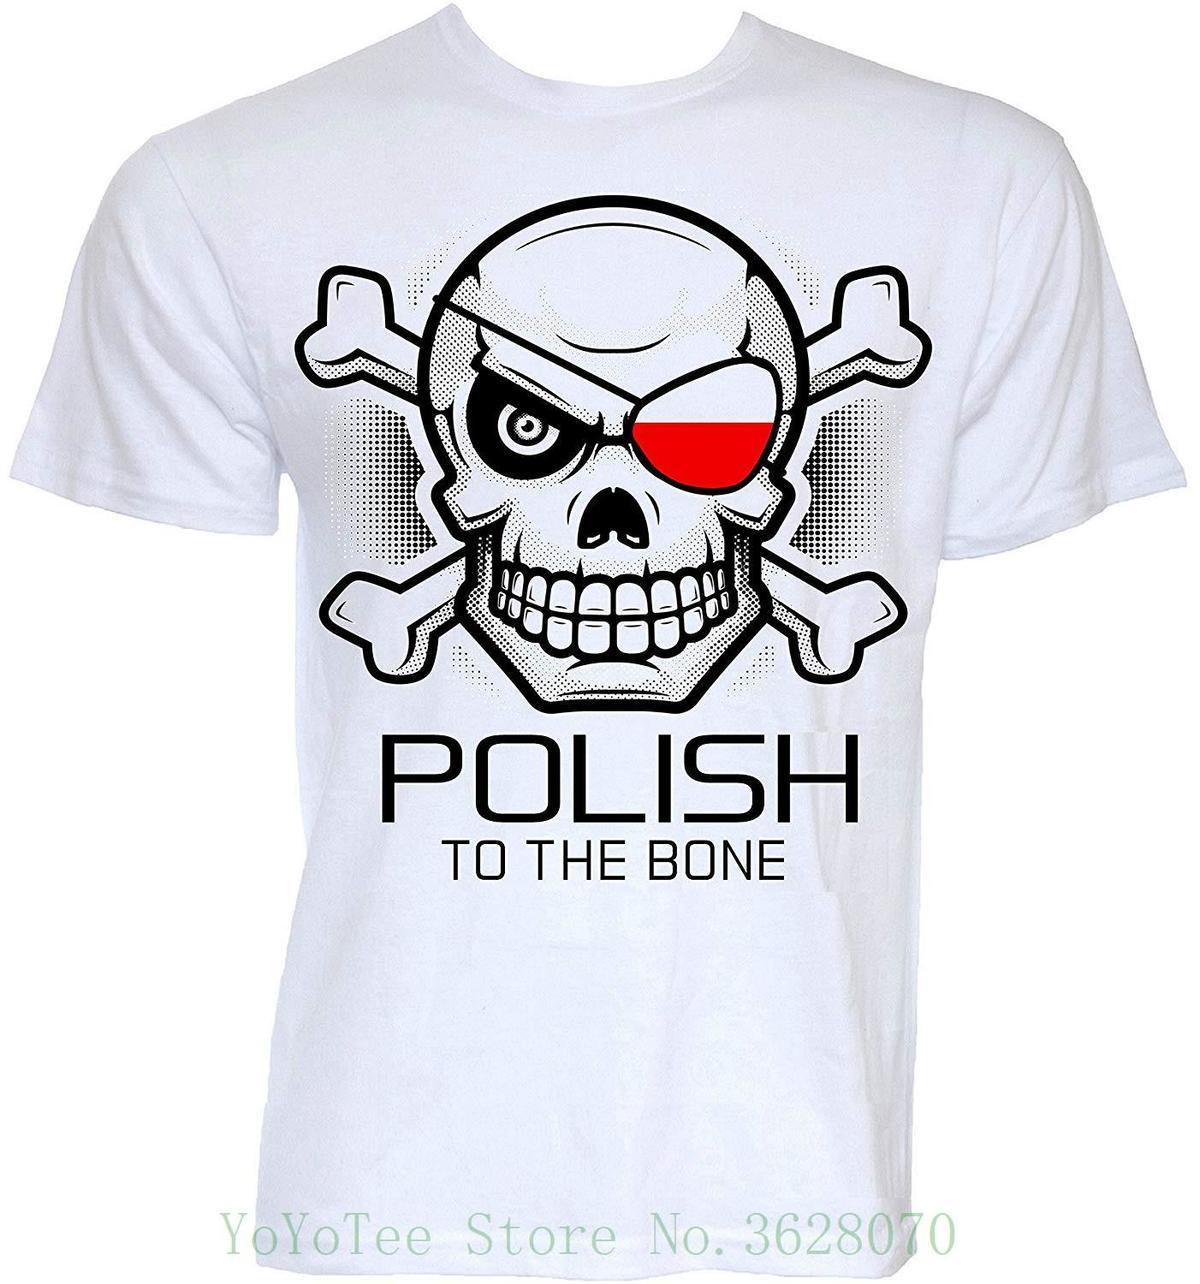 cbea0b16 Beat Tees Clothing Mens Funny Novelty Polish To The Bone Joke Poland Flag  Gifts T Shirts Summer New Print Man Cotton Fashion Tee Shirt Designs  Humorous T ...